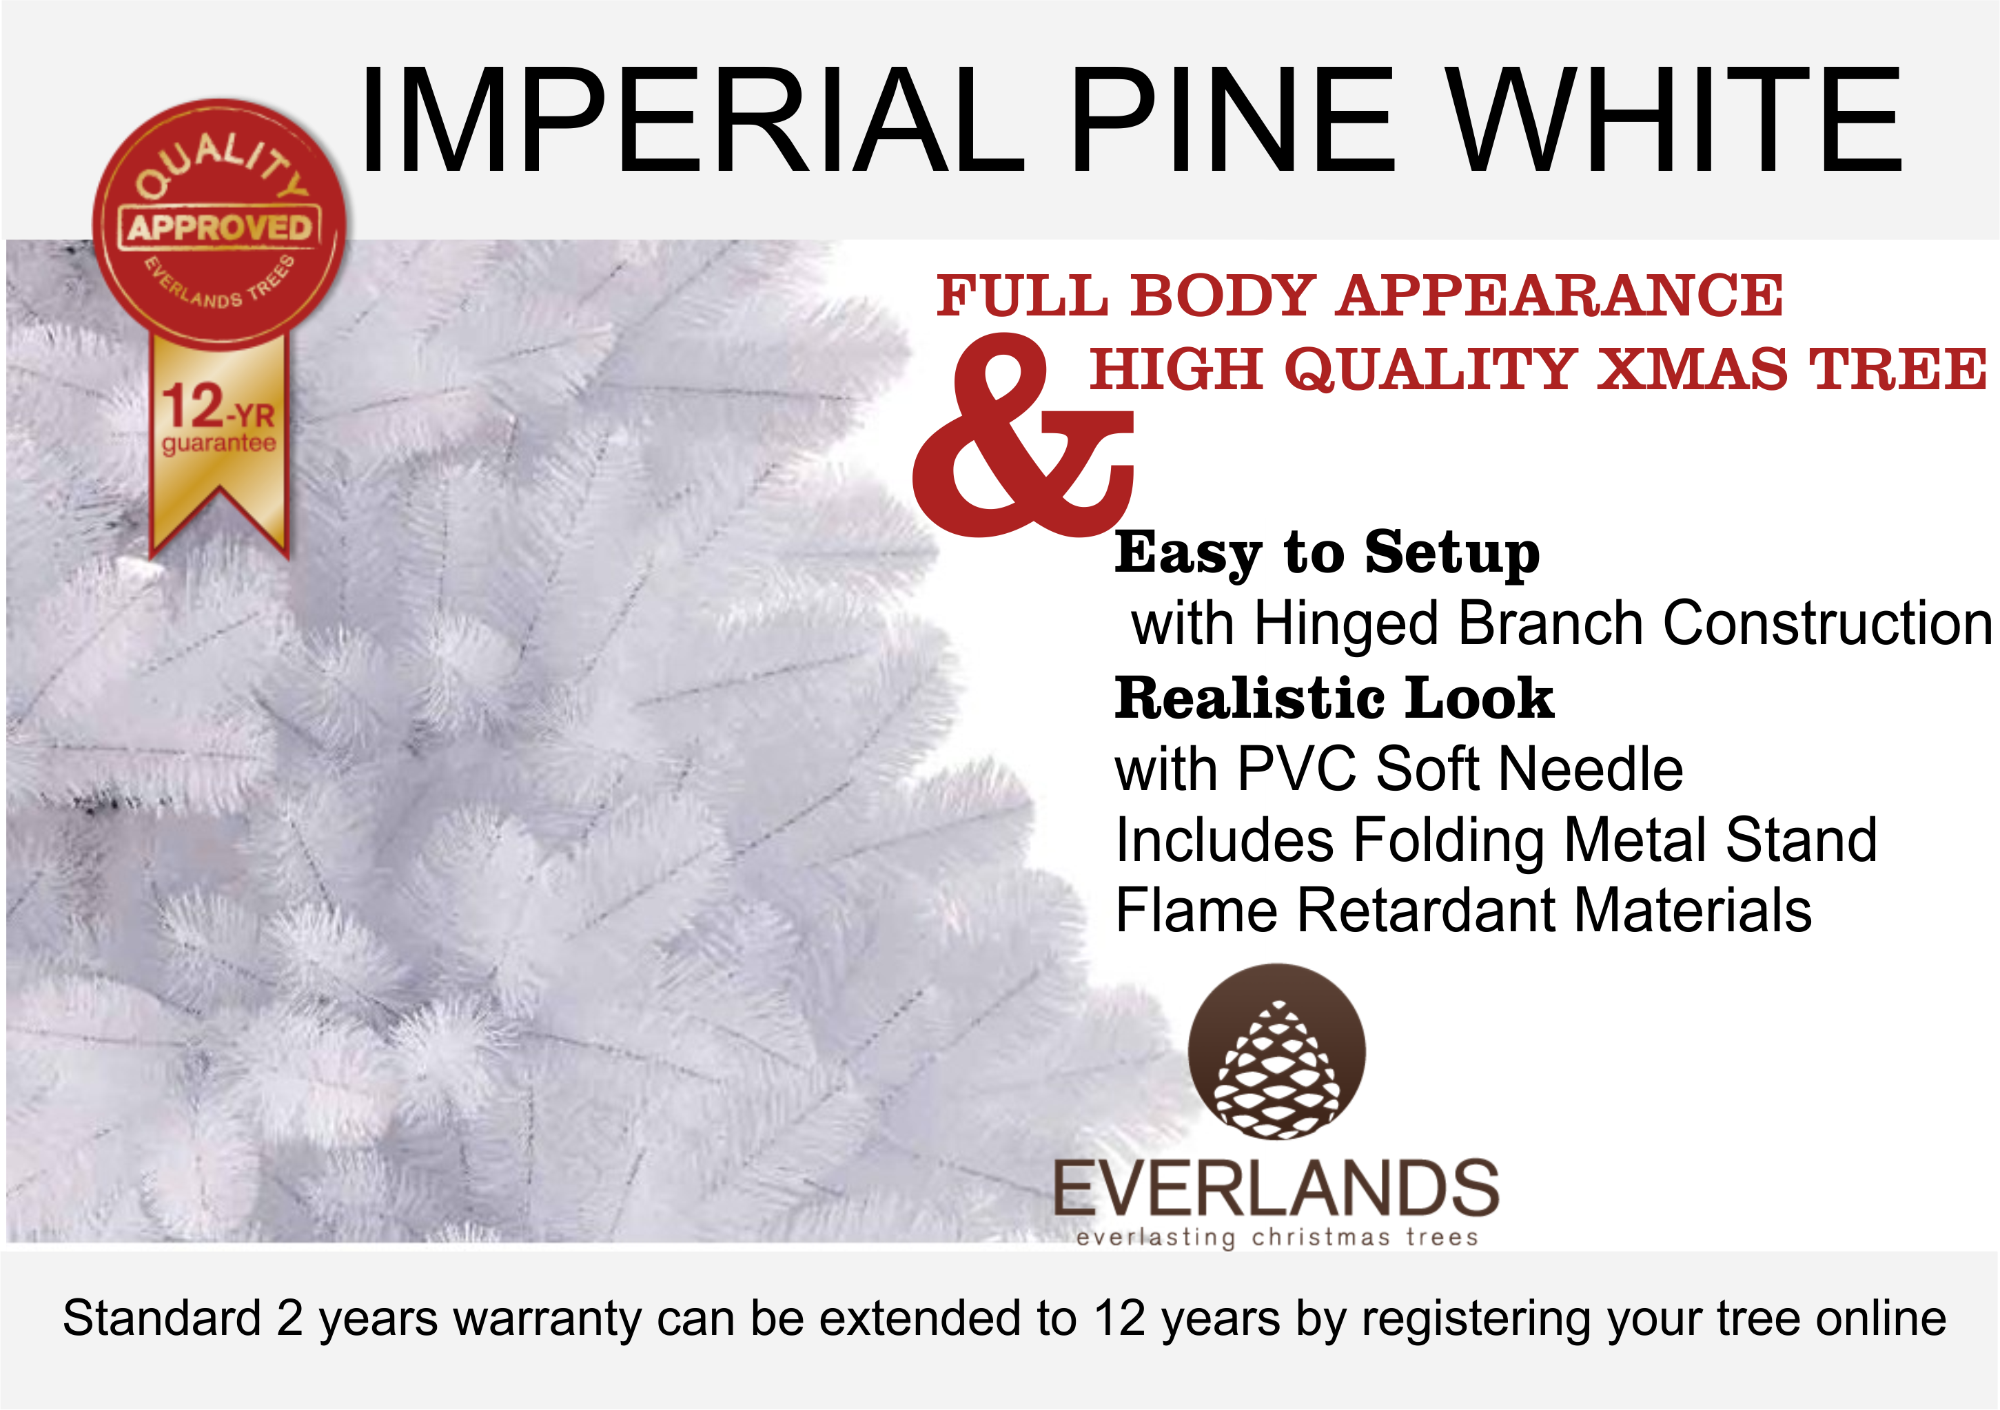 IMPERIAL_PINE_WHITE_DISCRIPTION.png